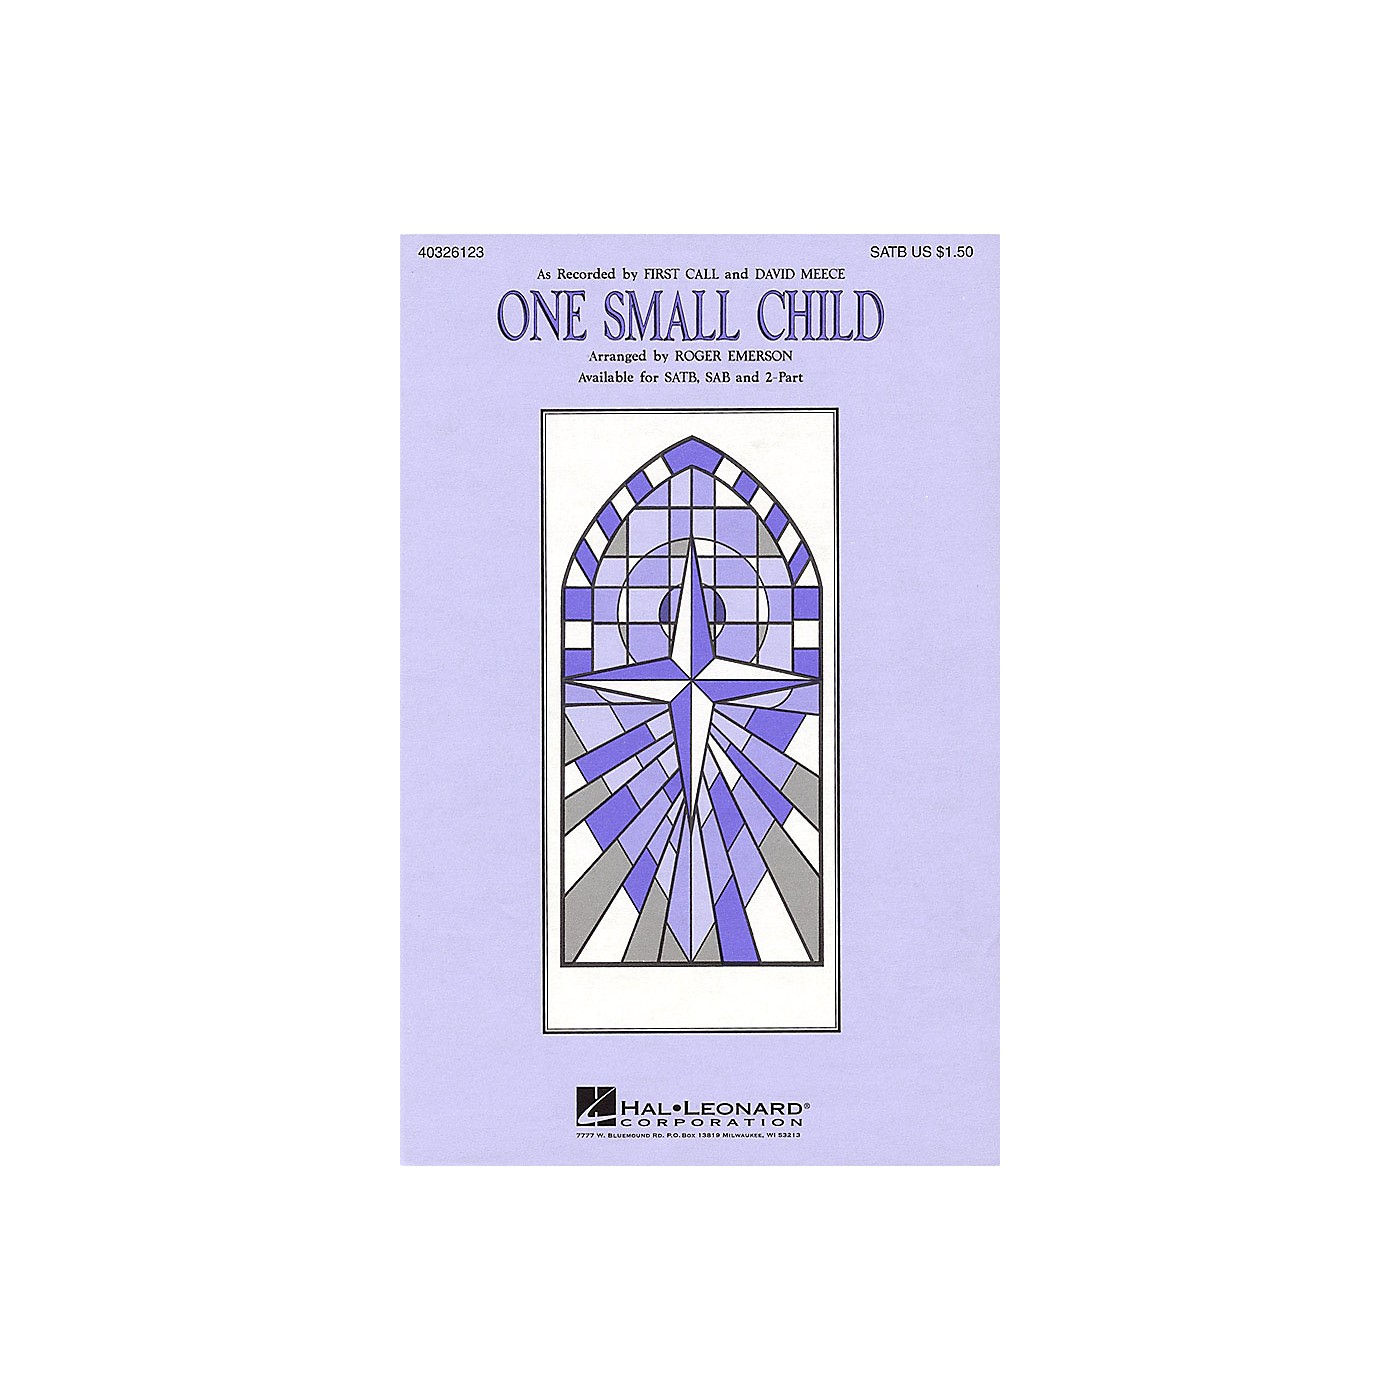 Hal Leonard One Small Child SATB by First Call arranged by Roger Emerson thumbnail